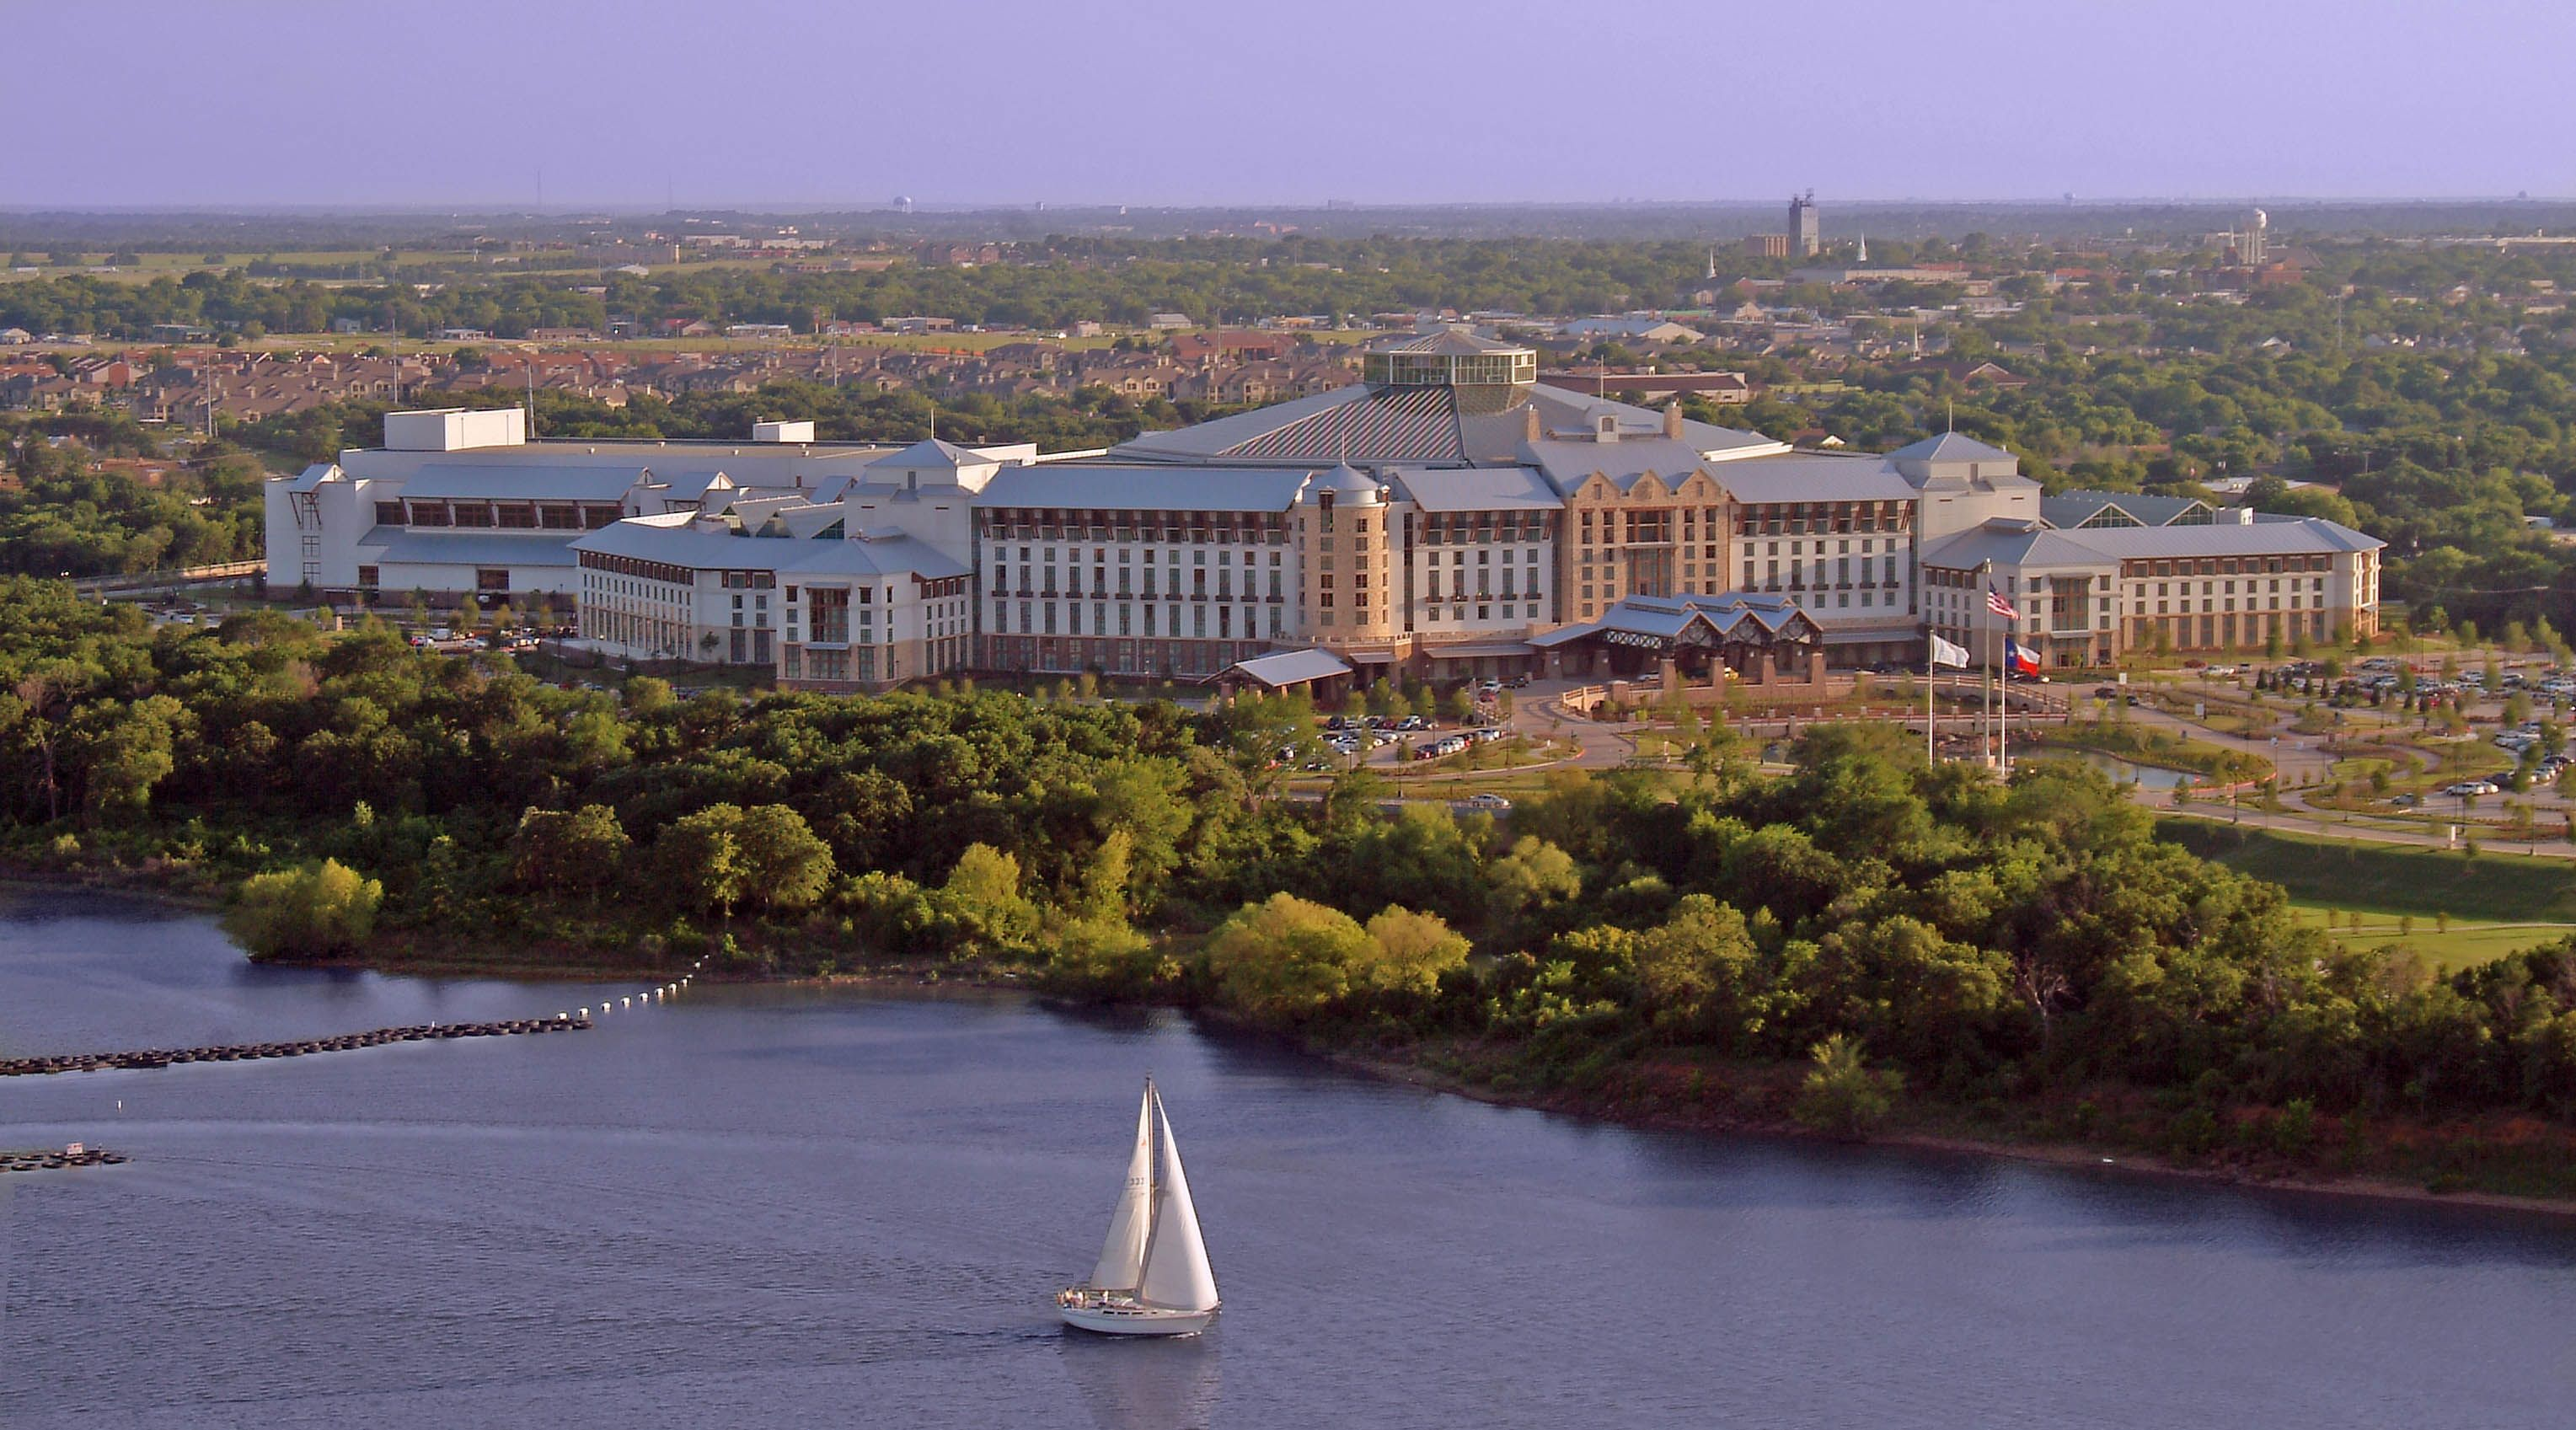 overlooking beautiful lake grapevine, the magnificent gaylord